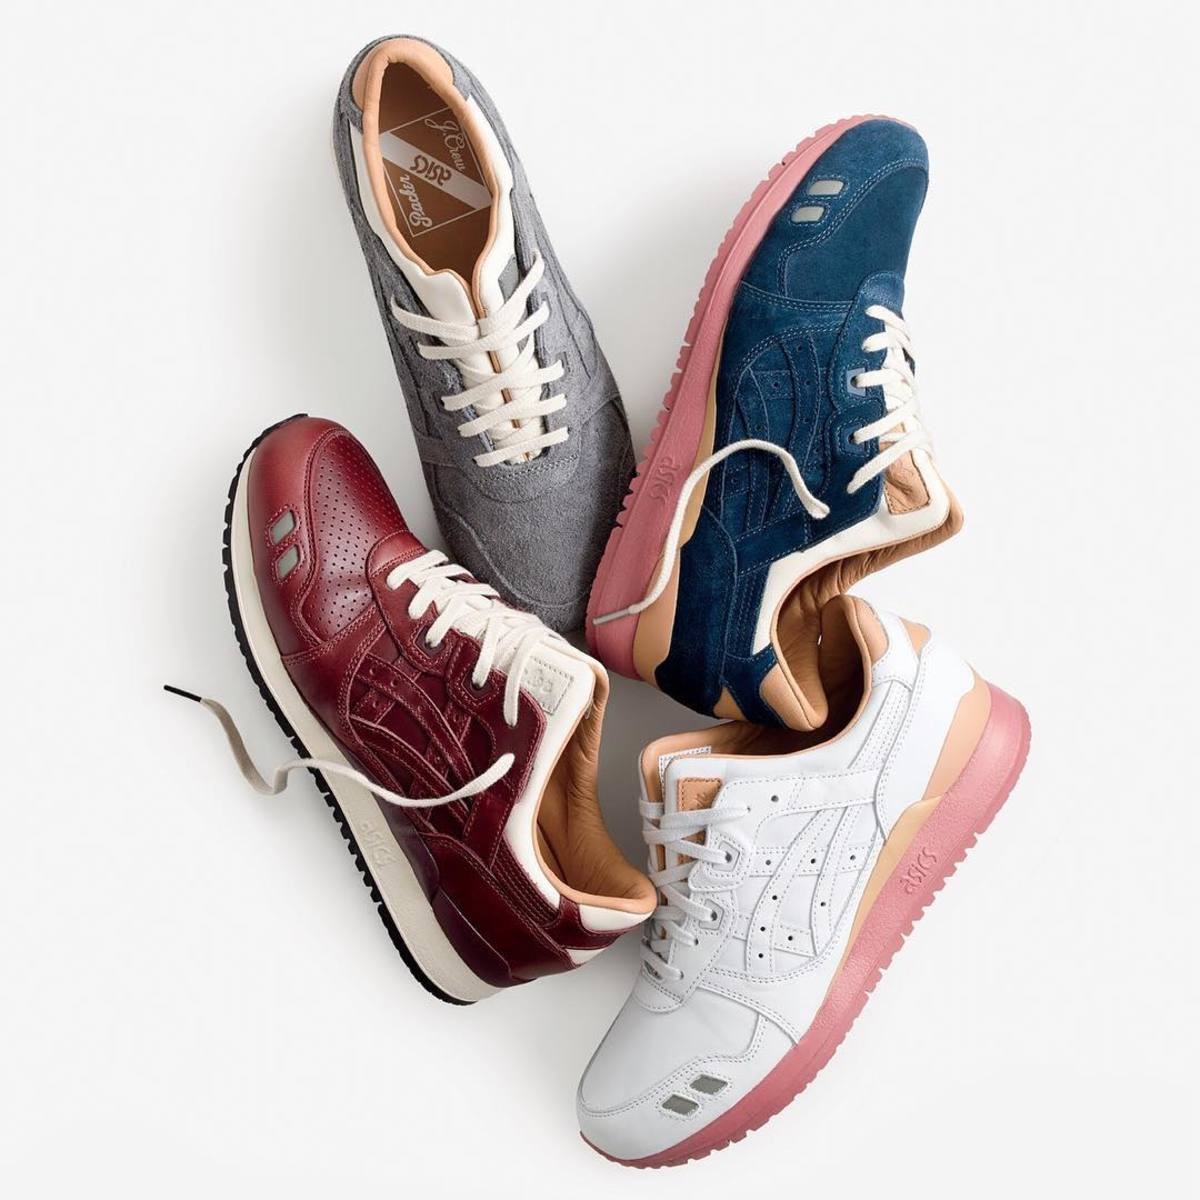 packer-shoes-jcrew-asics-gel-lyte-iii-1907-collection-02